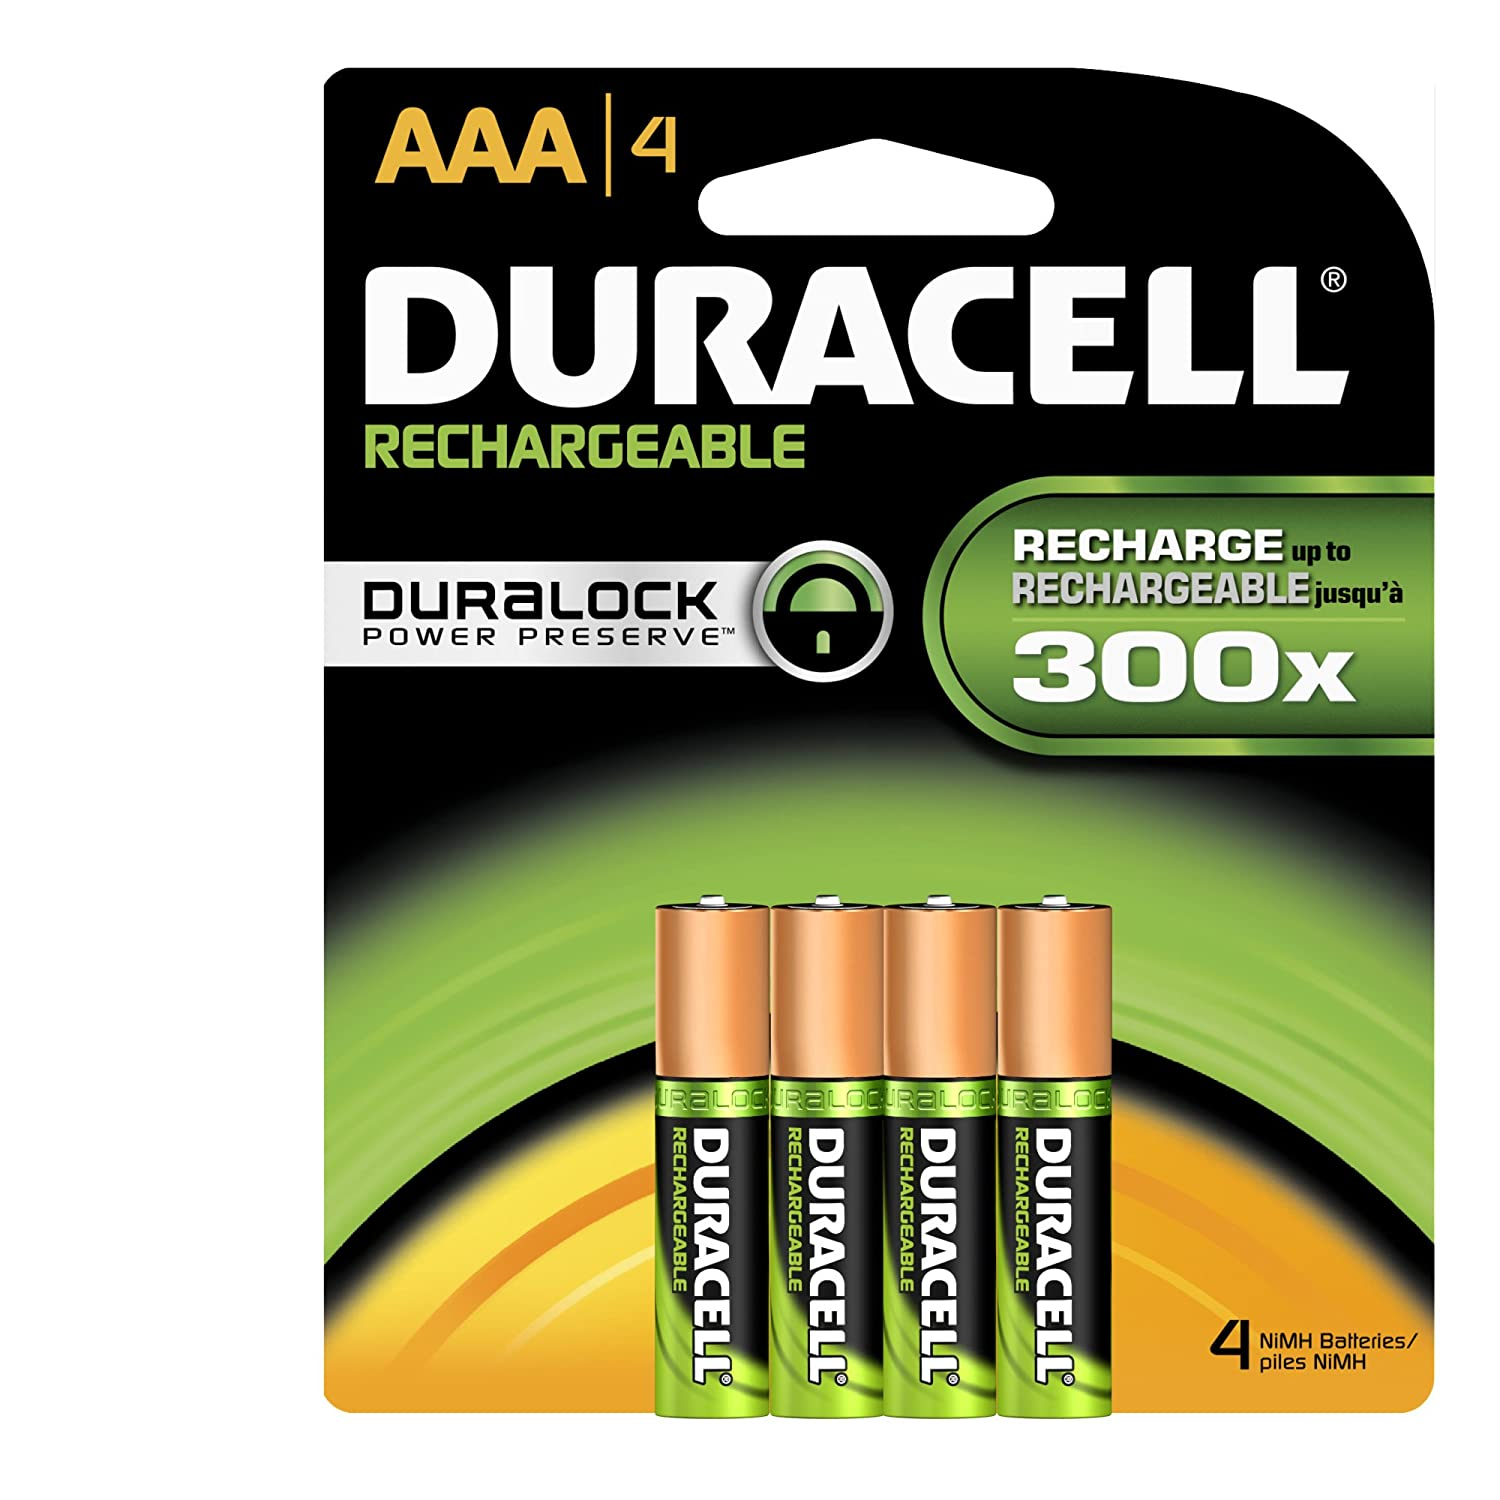 Duracell Rechargeable Aaa Batteries 4 Count (Pack of 2) $9.99